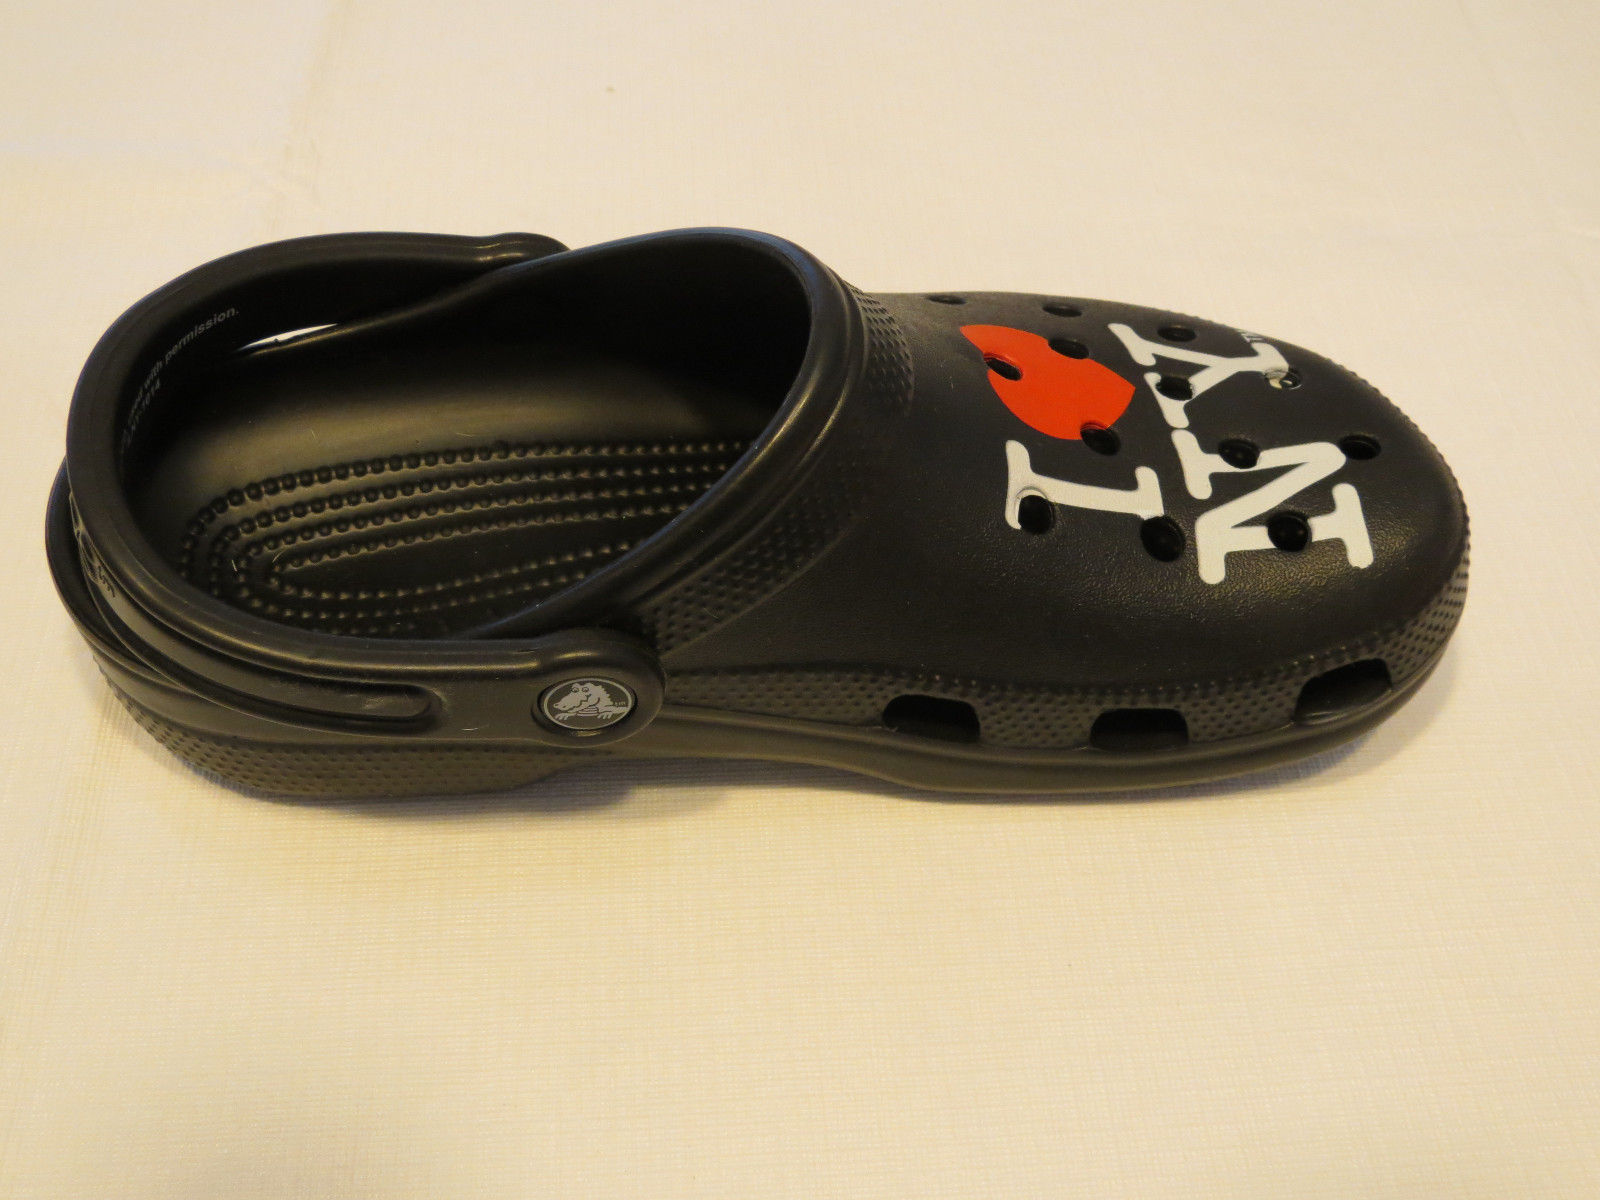 d87d9bc2c Amputee right shoe only Crocs I love New York roomy fit clog shoe M 4 W